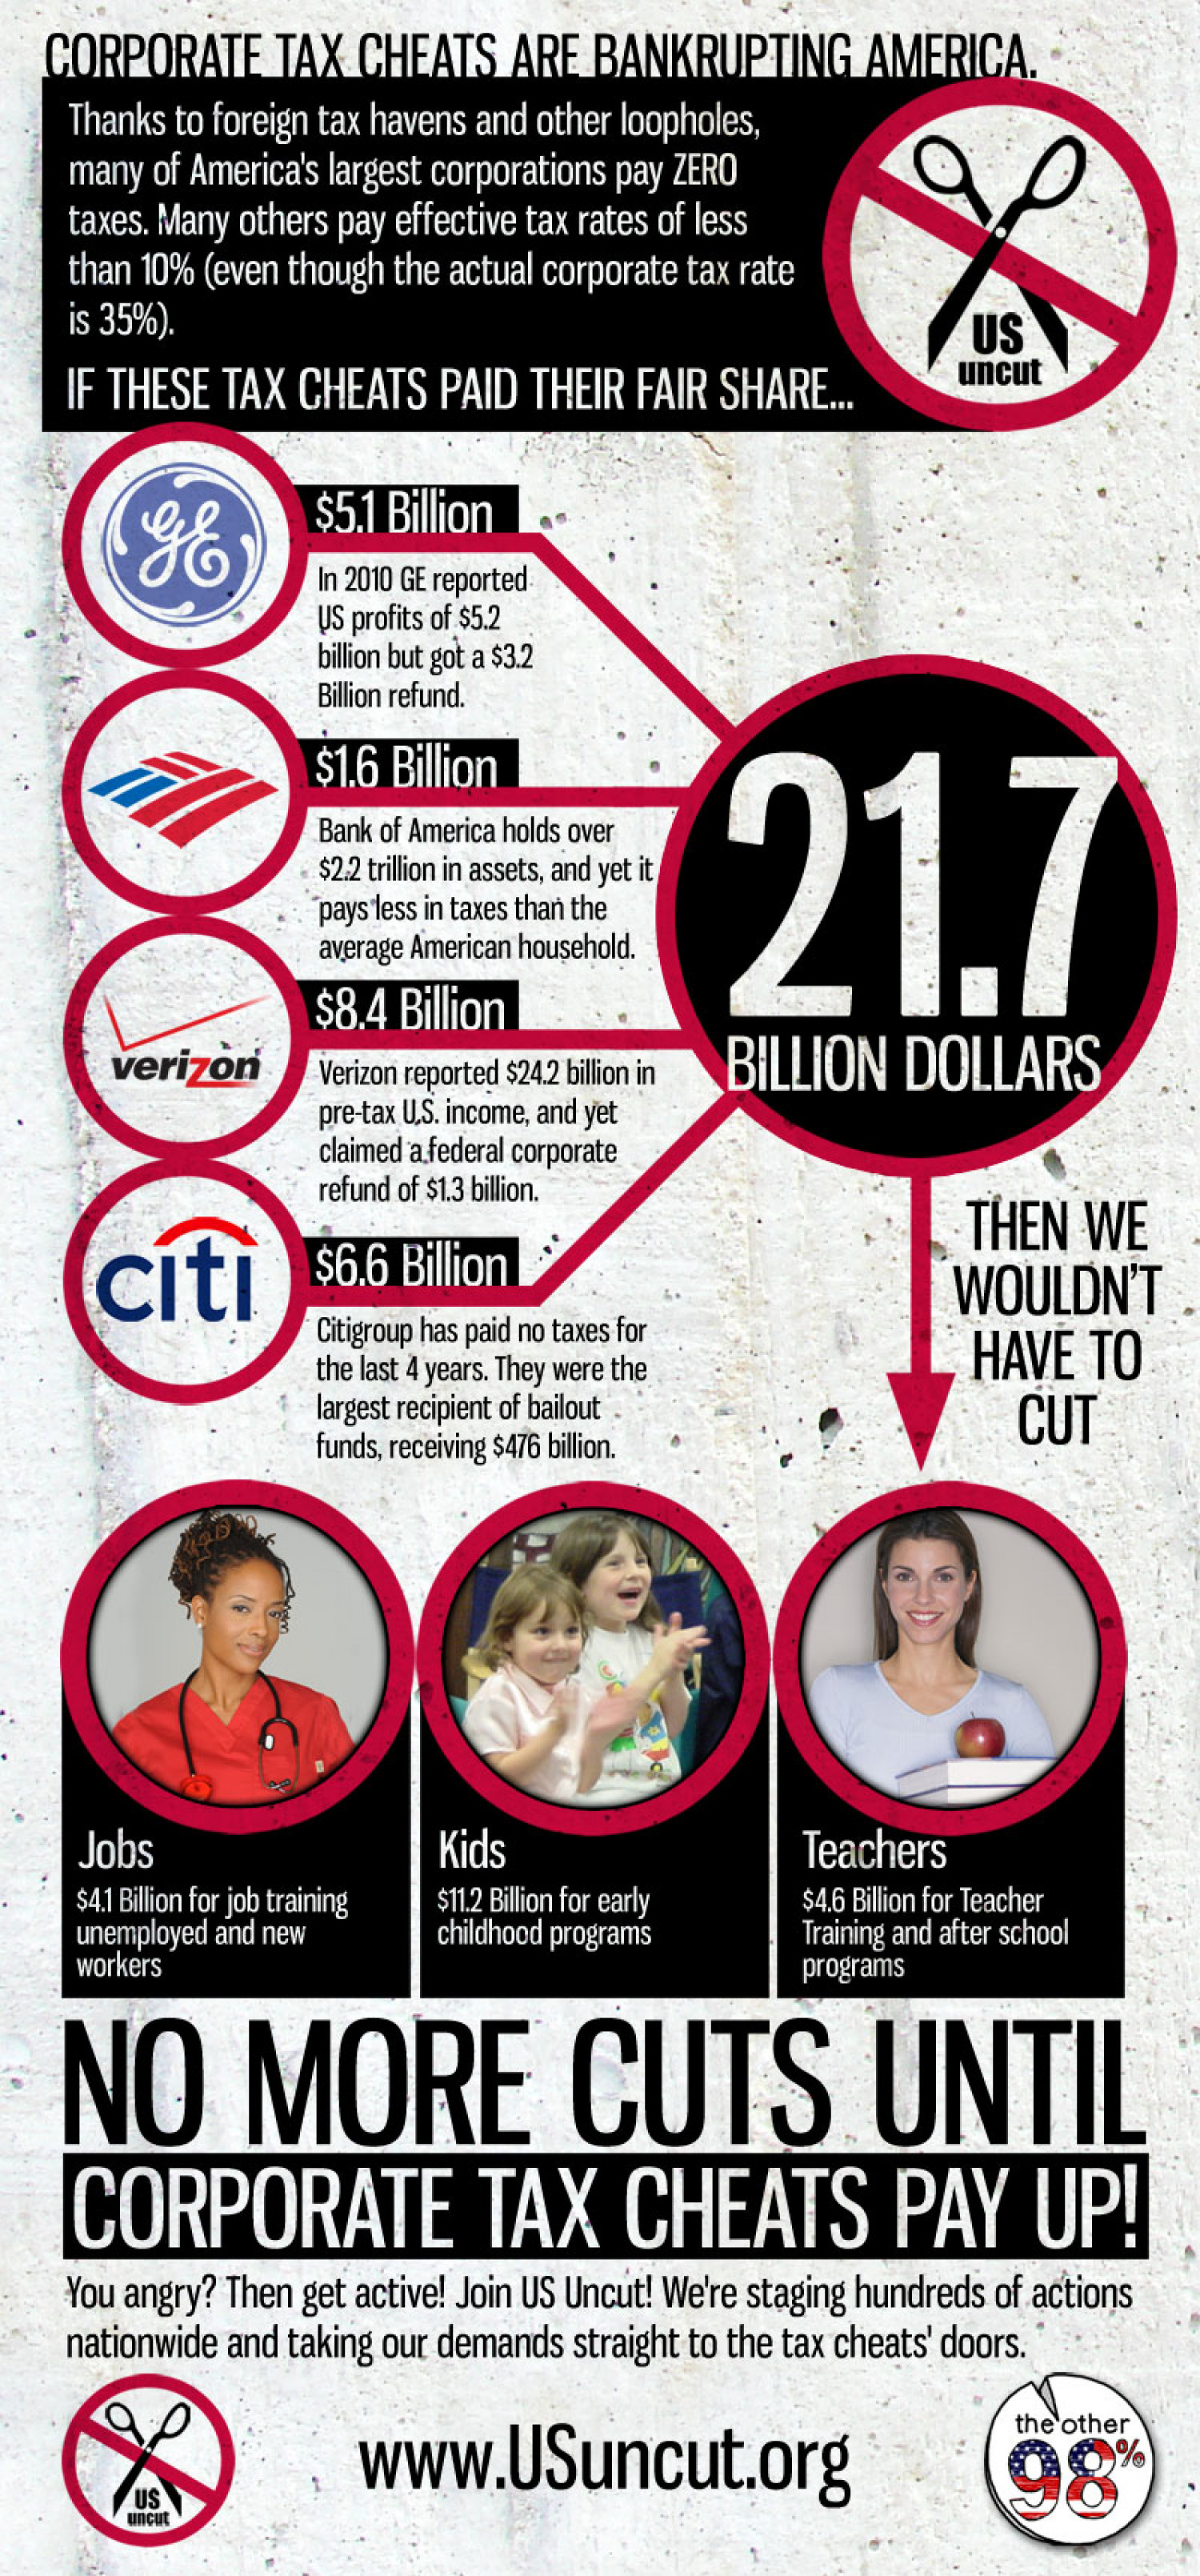 Corporate Tax Cheats are Bankrupting America Infographic